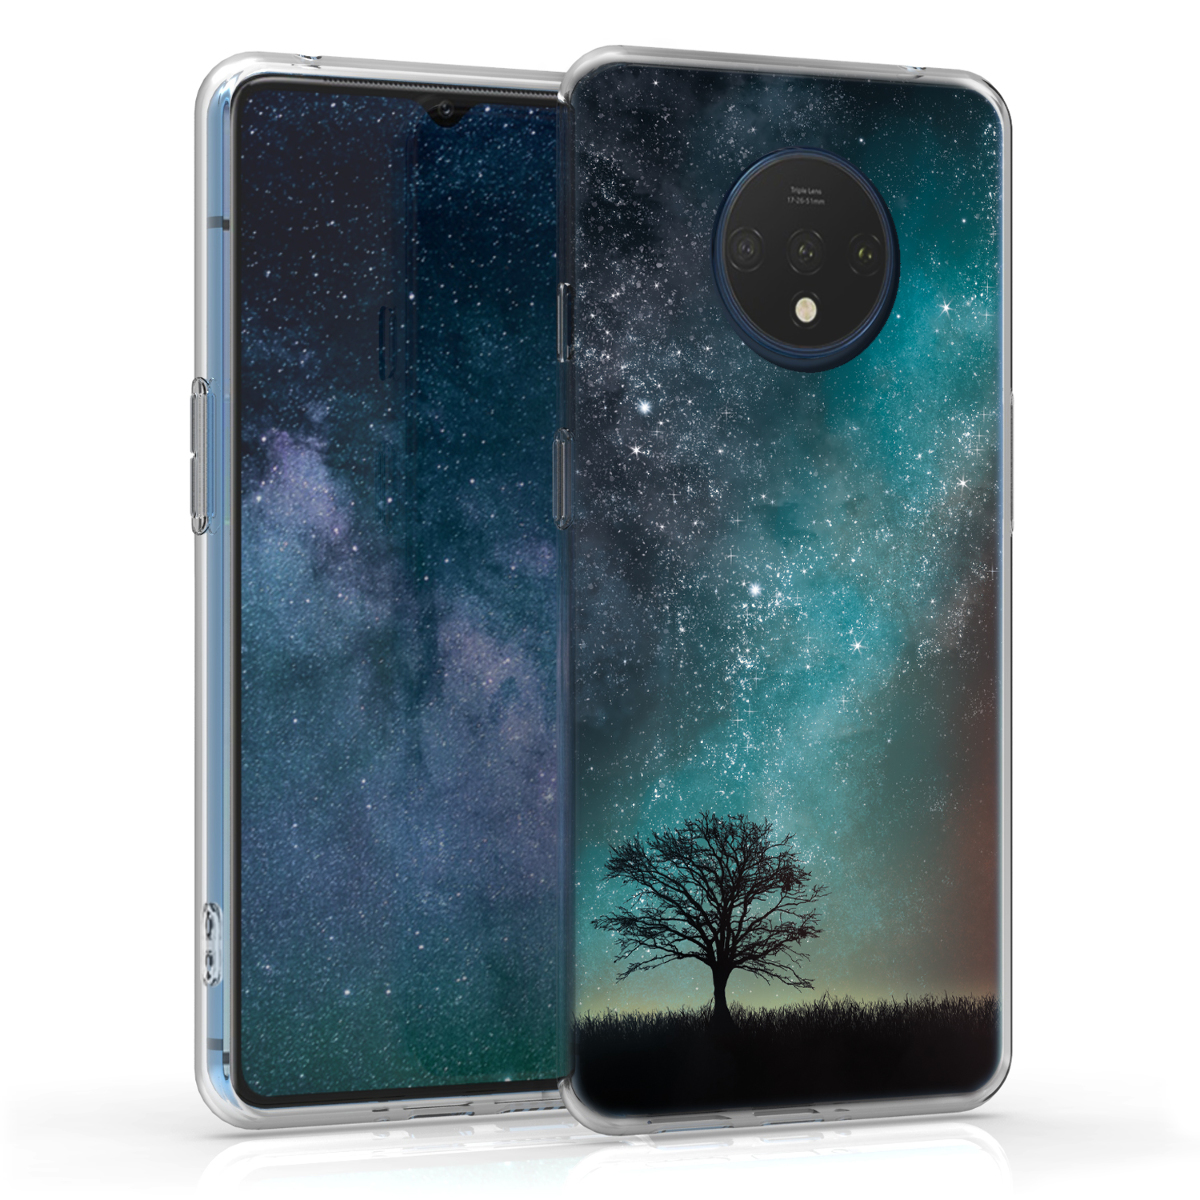 KW Θήκη Σιλικόνης OnePlus 7T - Cosmic Nature - Blue / Grey / Black (51154.01)